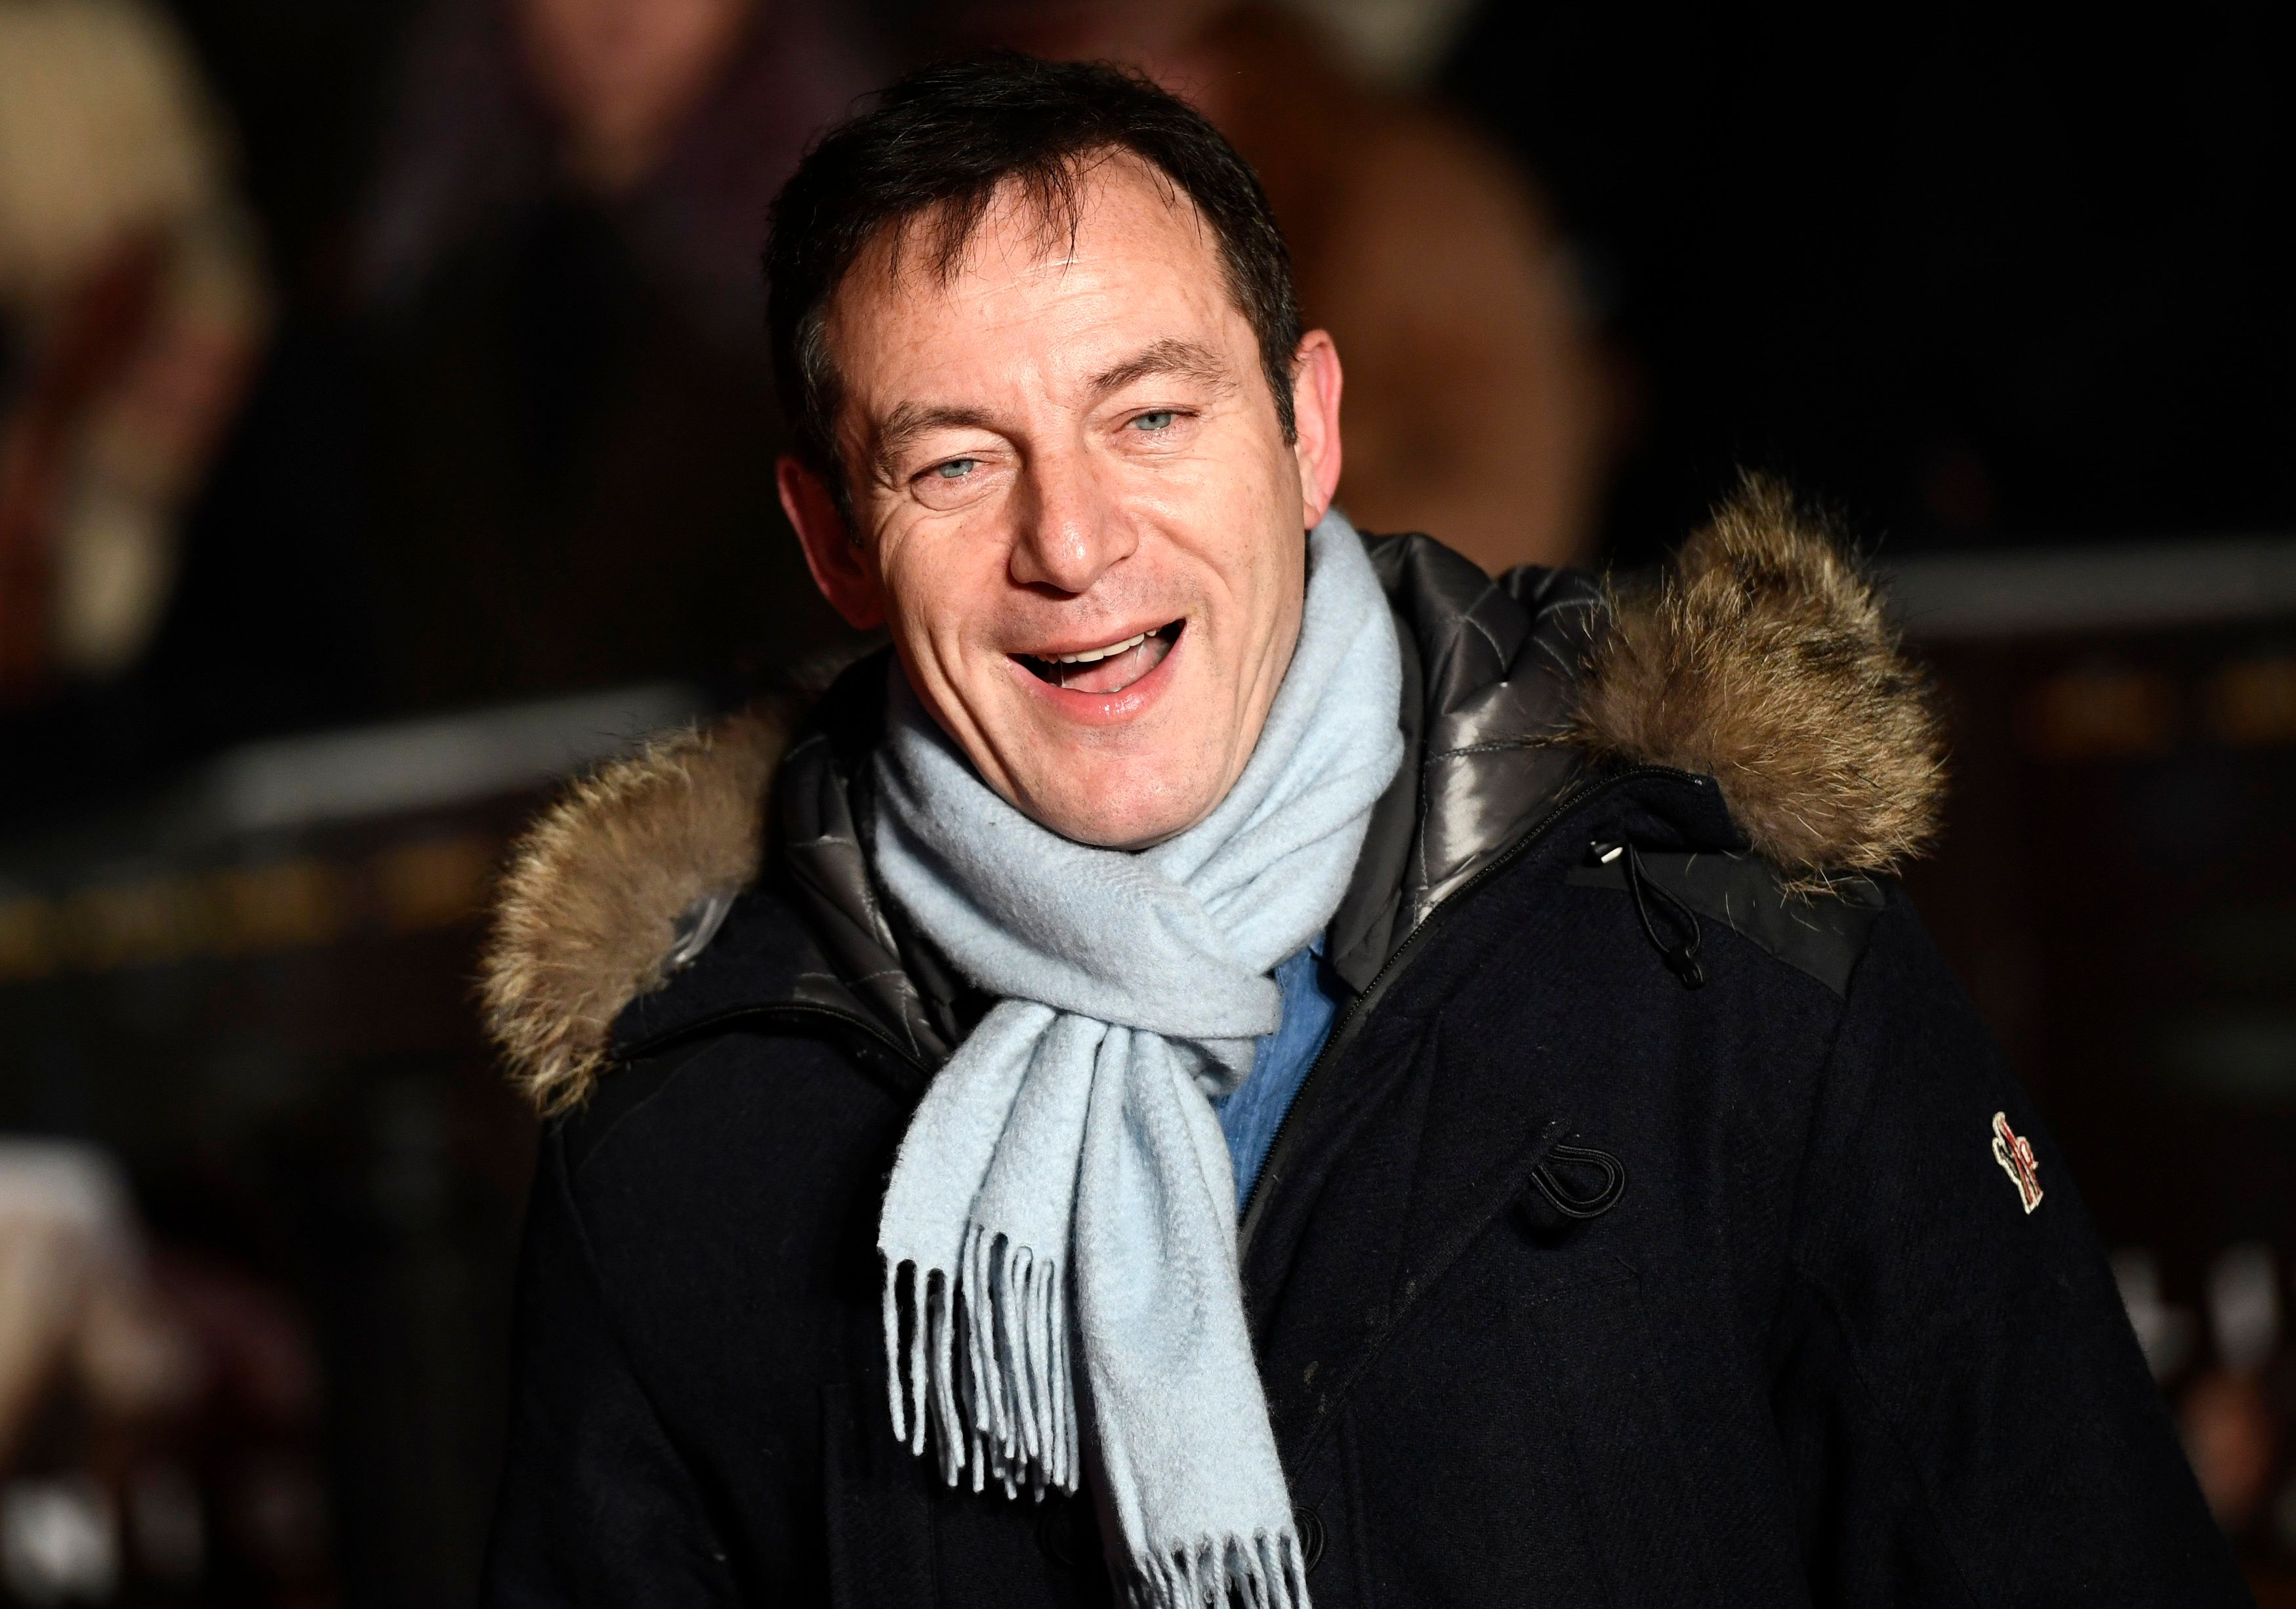 Jason Isaacs arrives at the European Premiere of Live by Night at the British Film Institute in London, Britain January 11, 2017. REUTER/Dylan Martinez